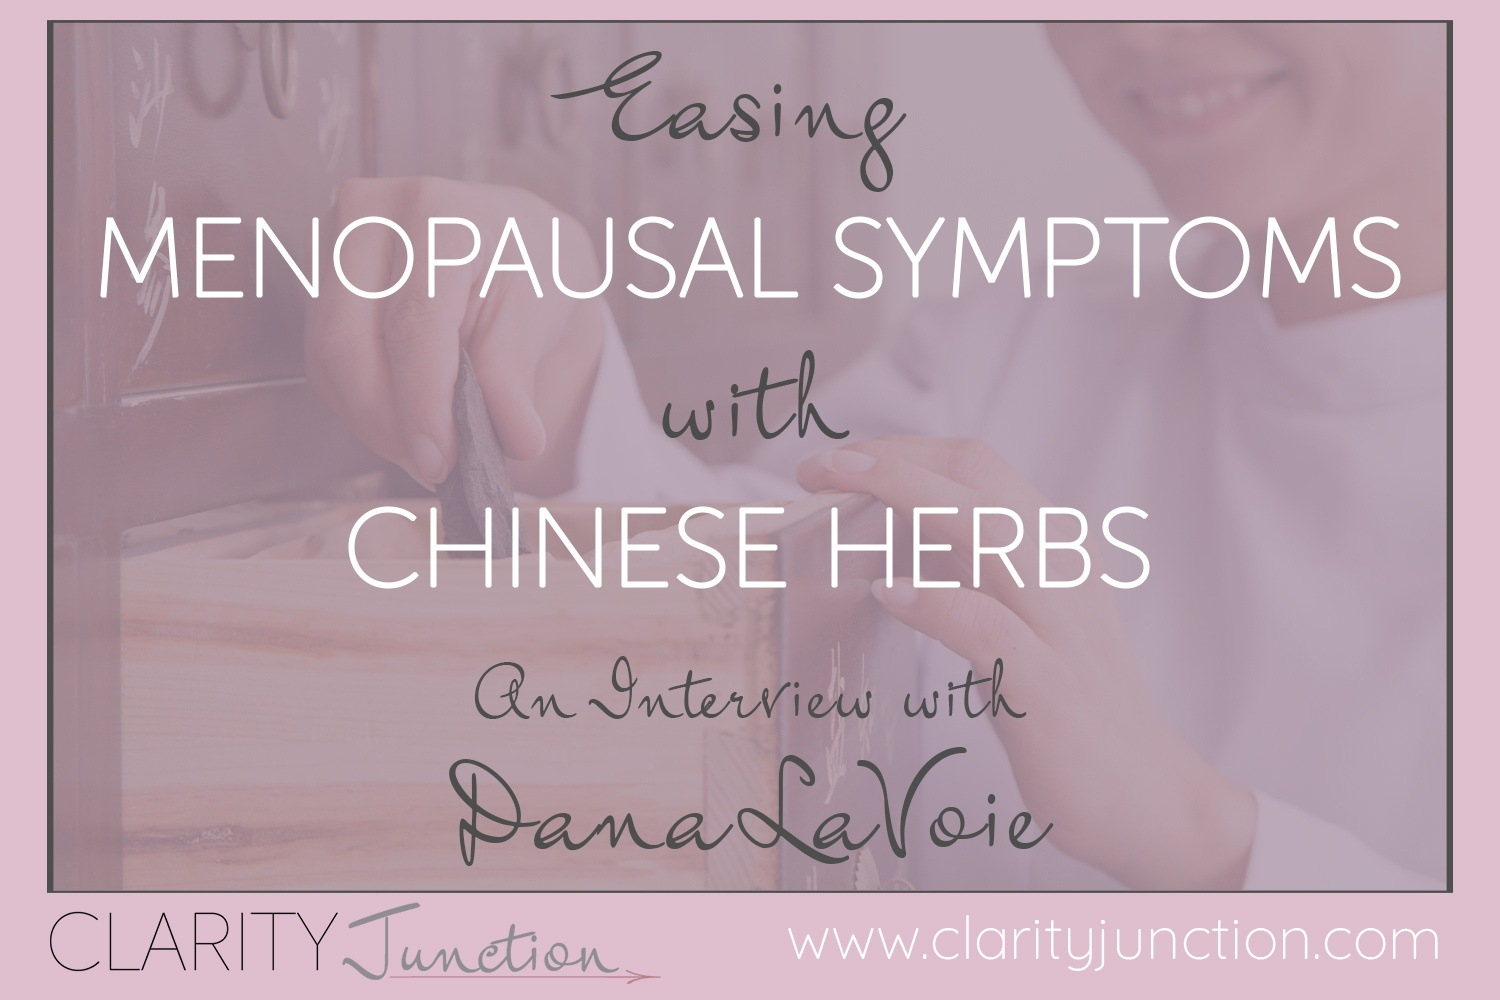 Easing Menopausal Symptoms with Chinese Herbs